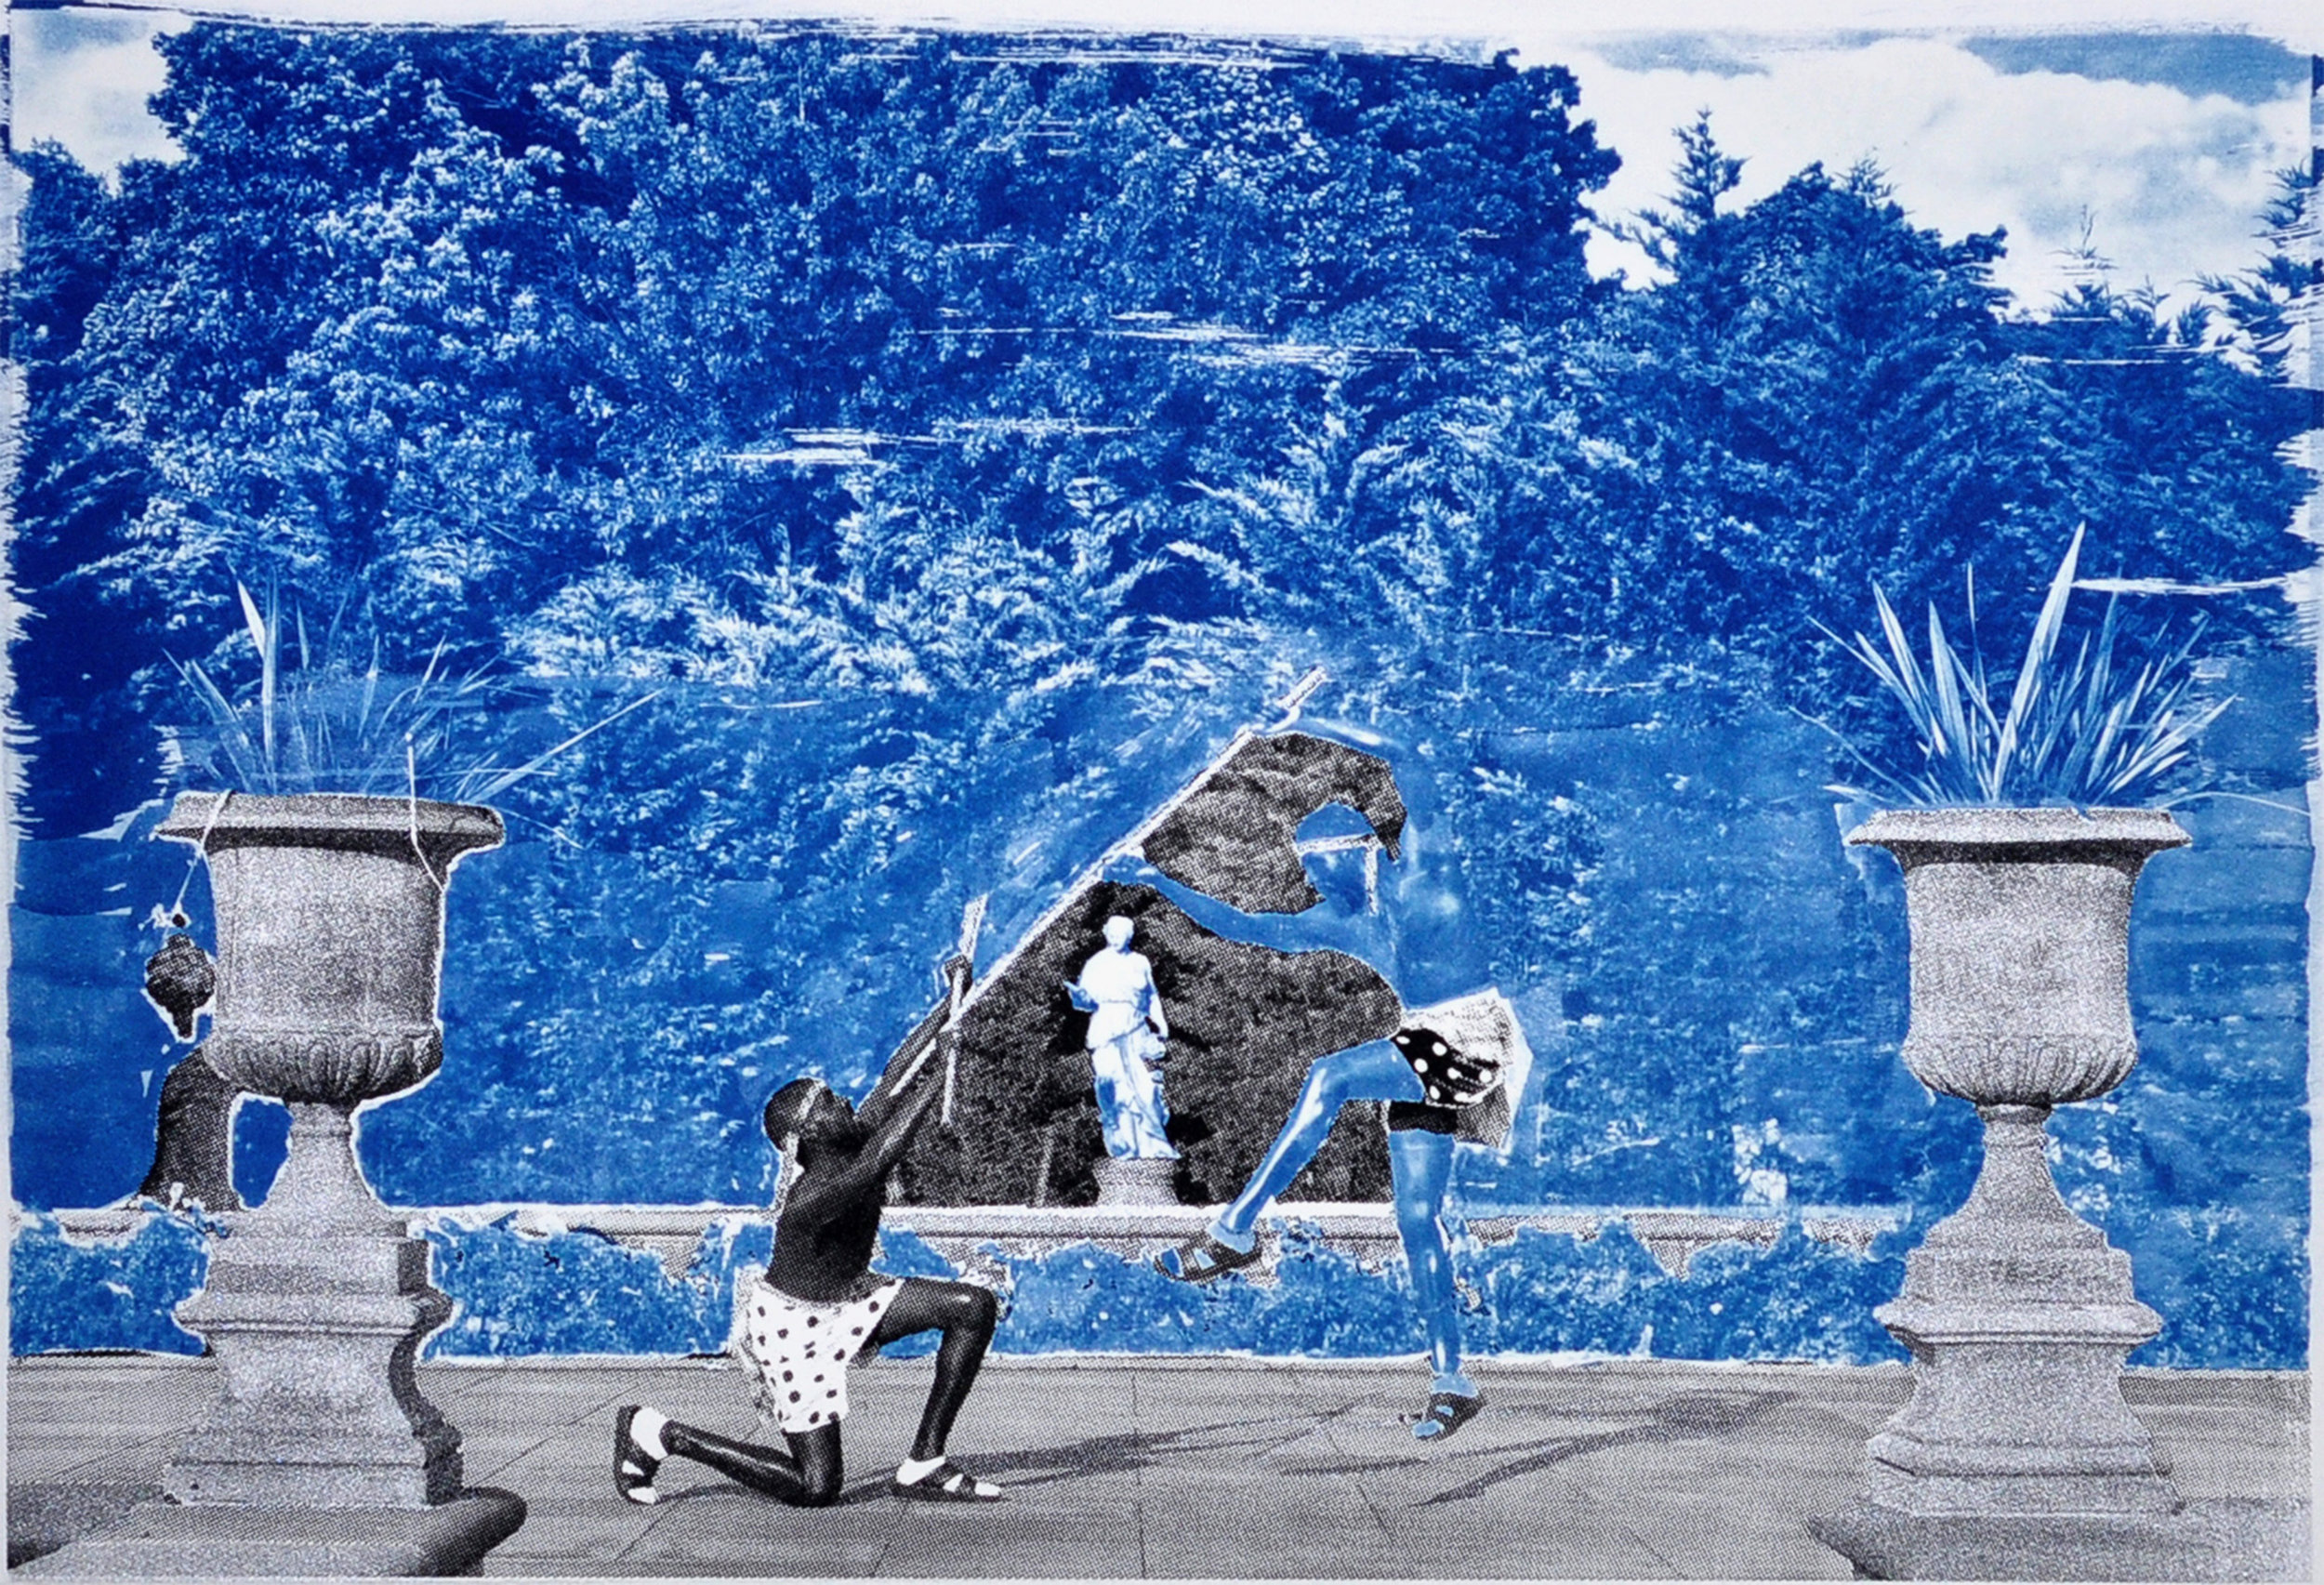 Ivan Forde,  Preparations for the Expedition to the Forest of Cedar , 2016  Silkscreen and cyanotype on paper, 12.5 x 18 inches (image size), 22 x 30 inches (paper size), edition of 3   Inquire